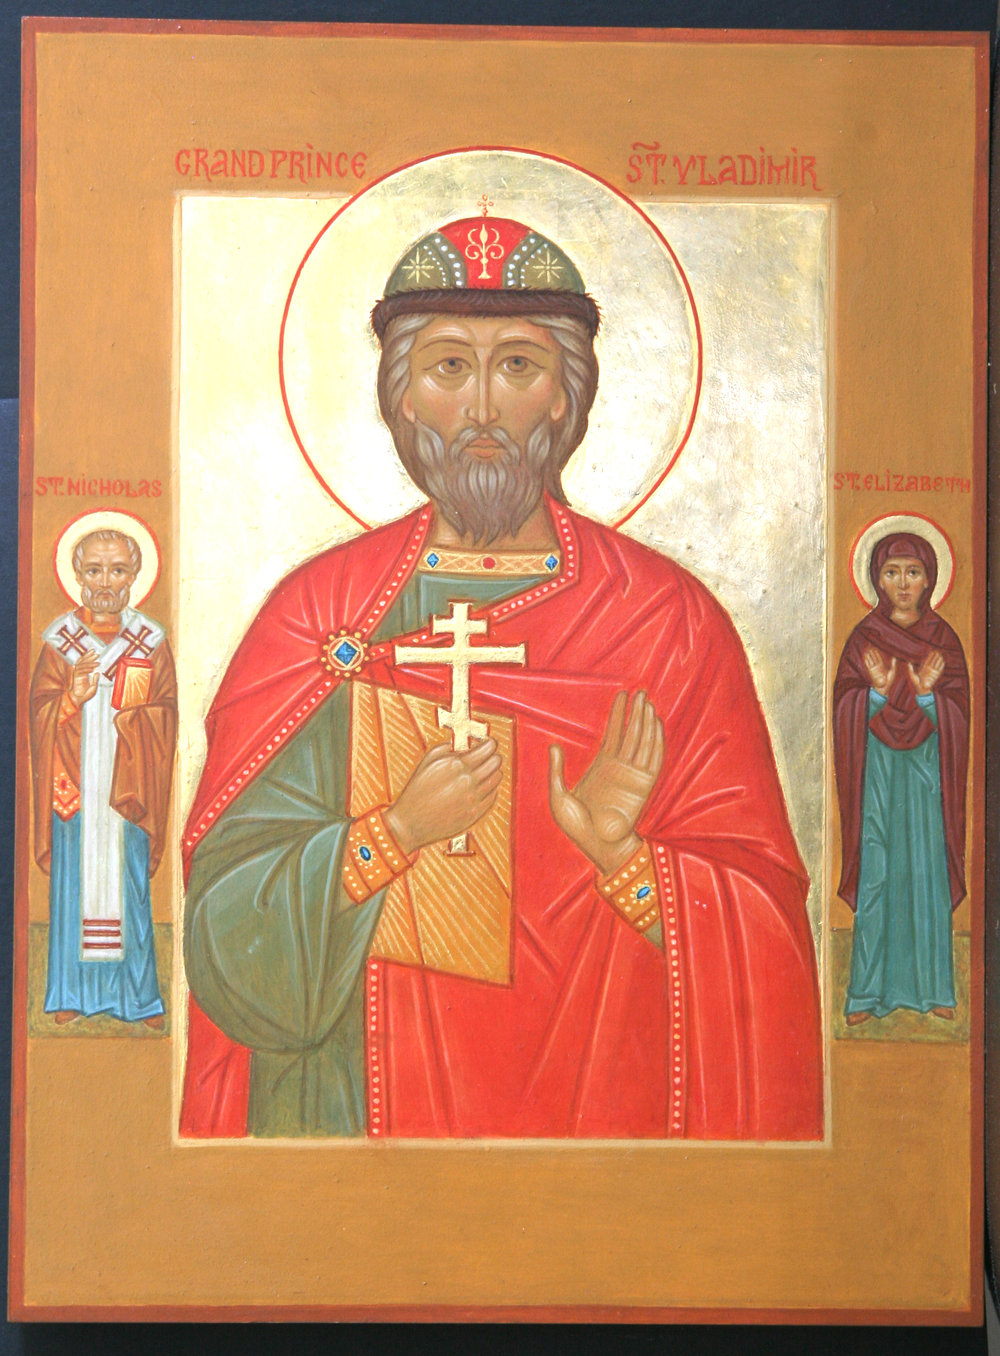 St. Vladimir with Saints